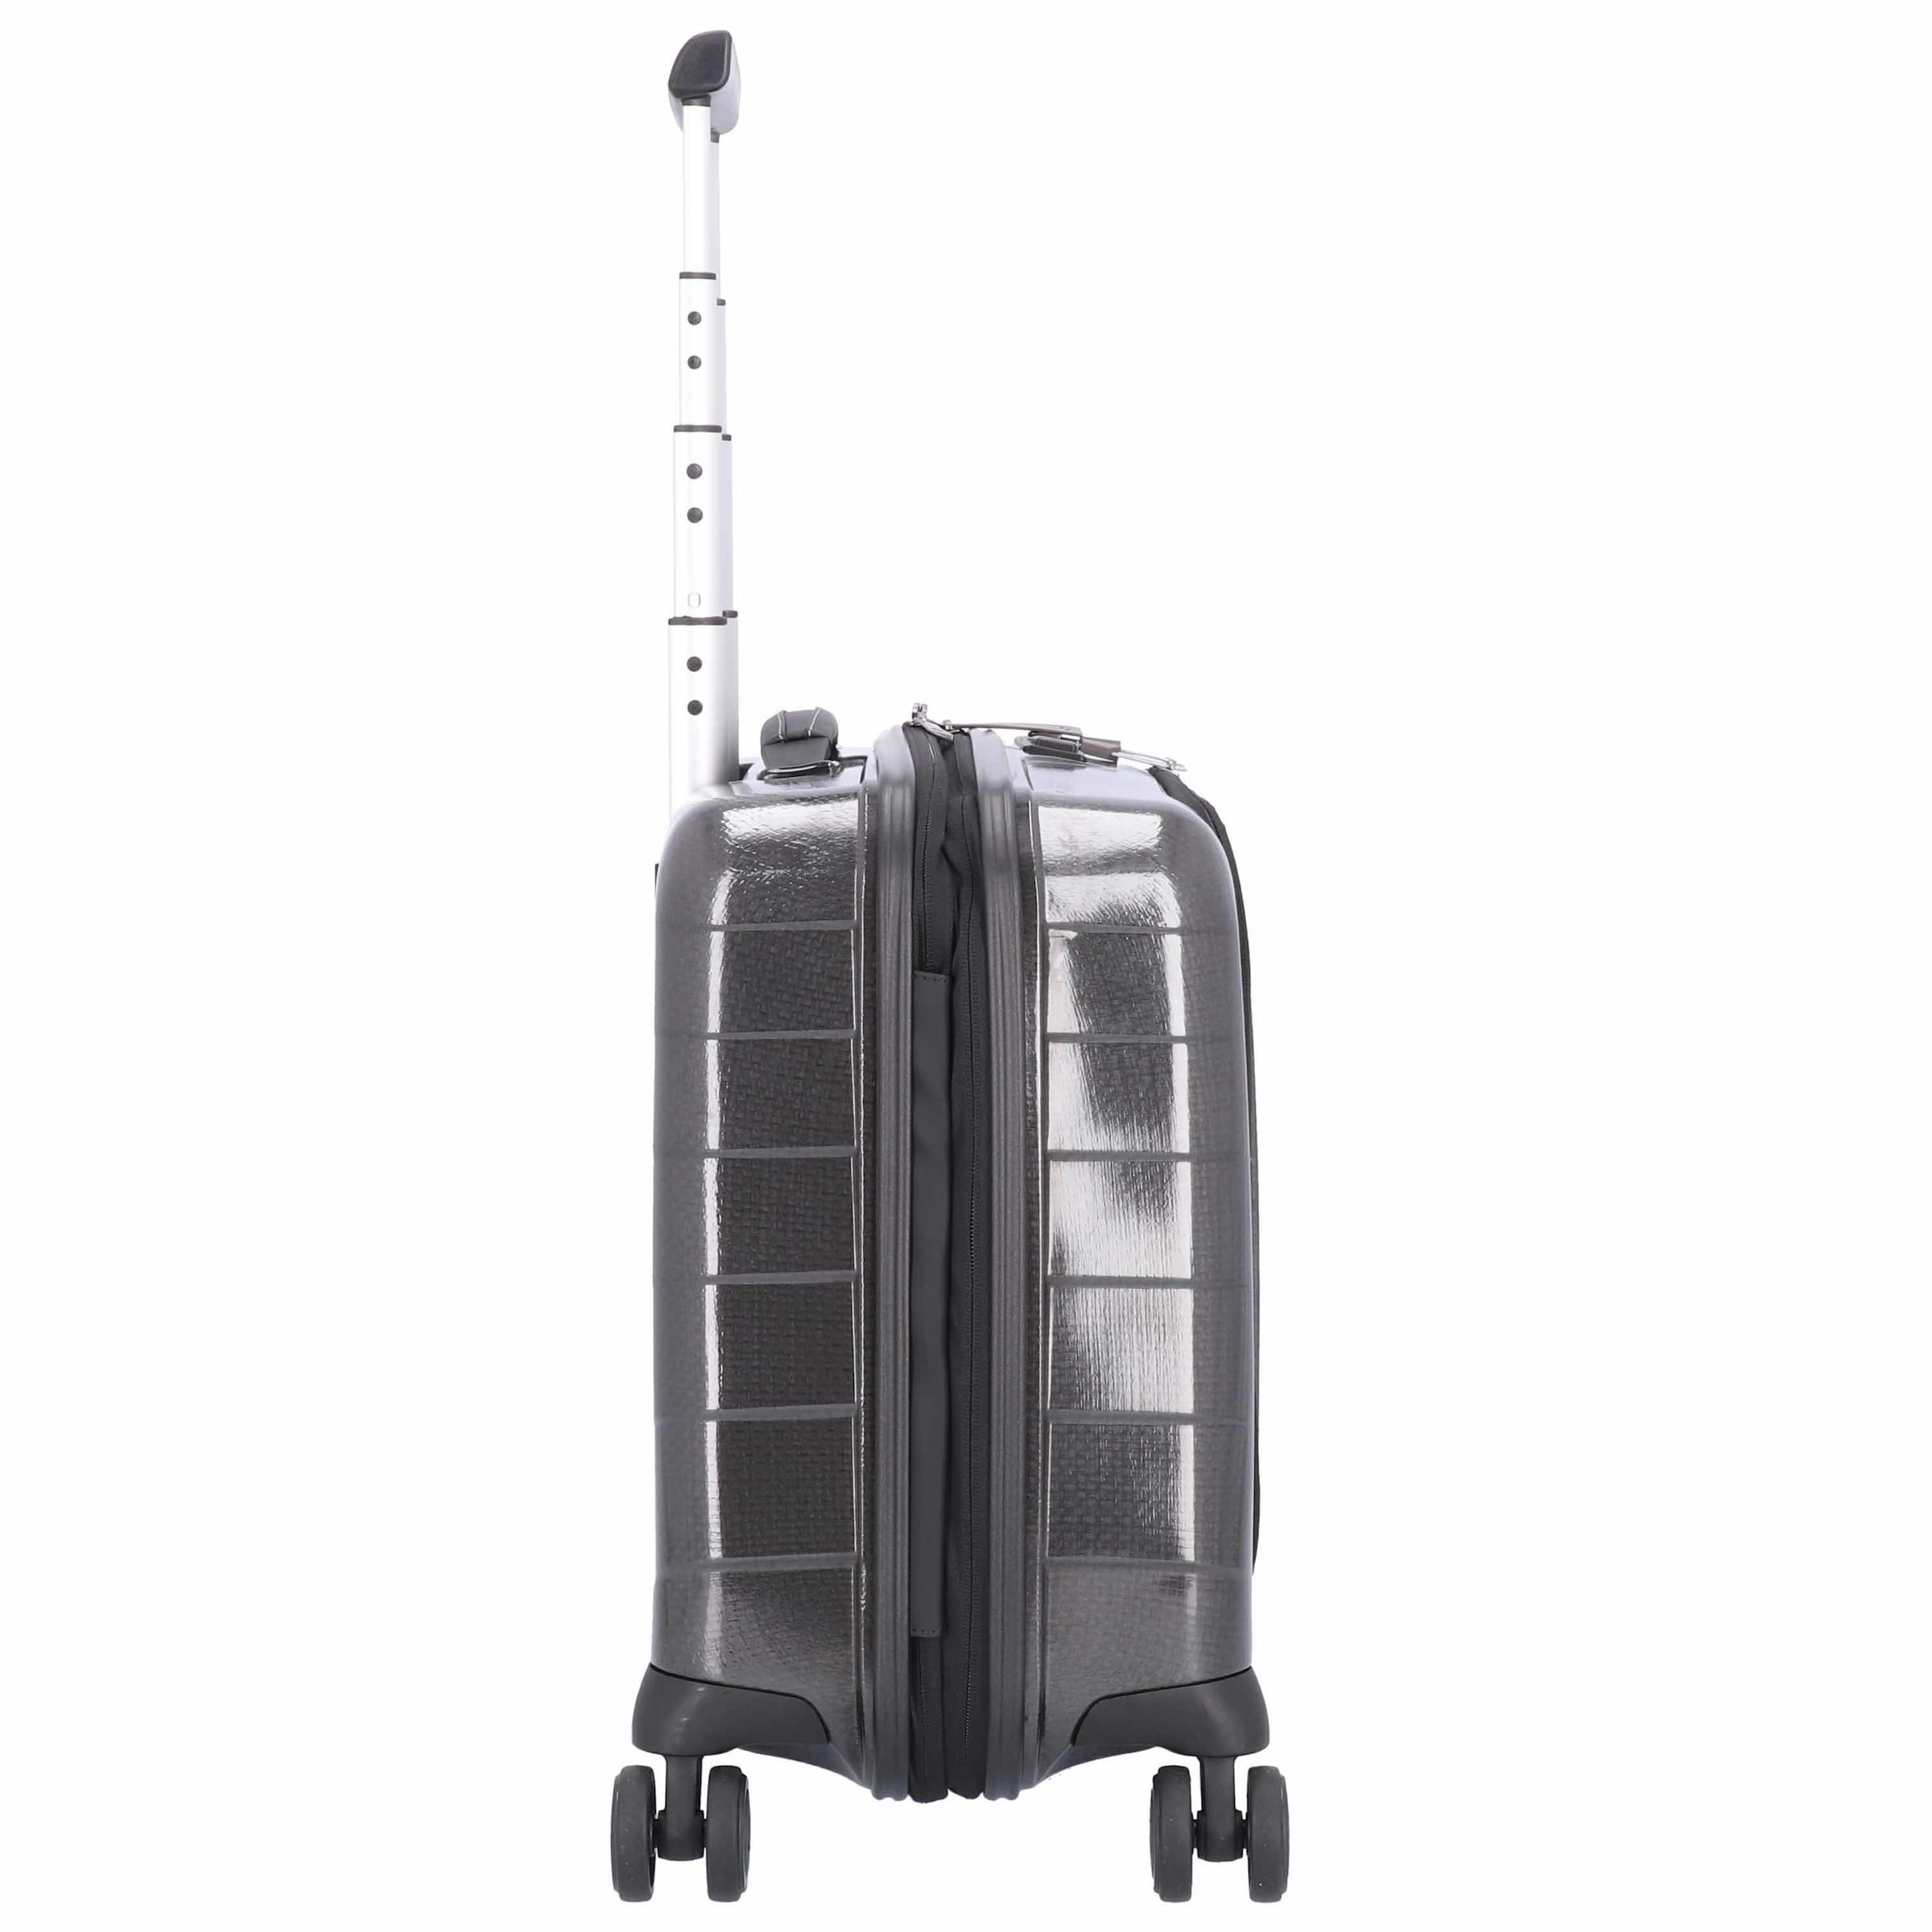 Schwarz 44 In Samsonite Businesstrolley Cm m0ywOvNn8